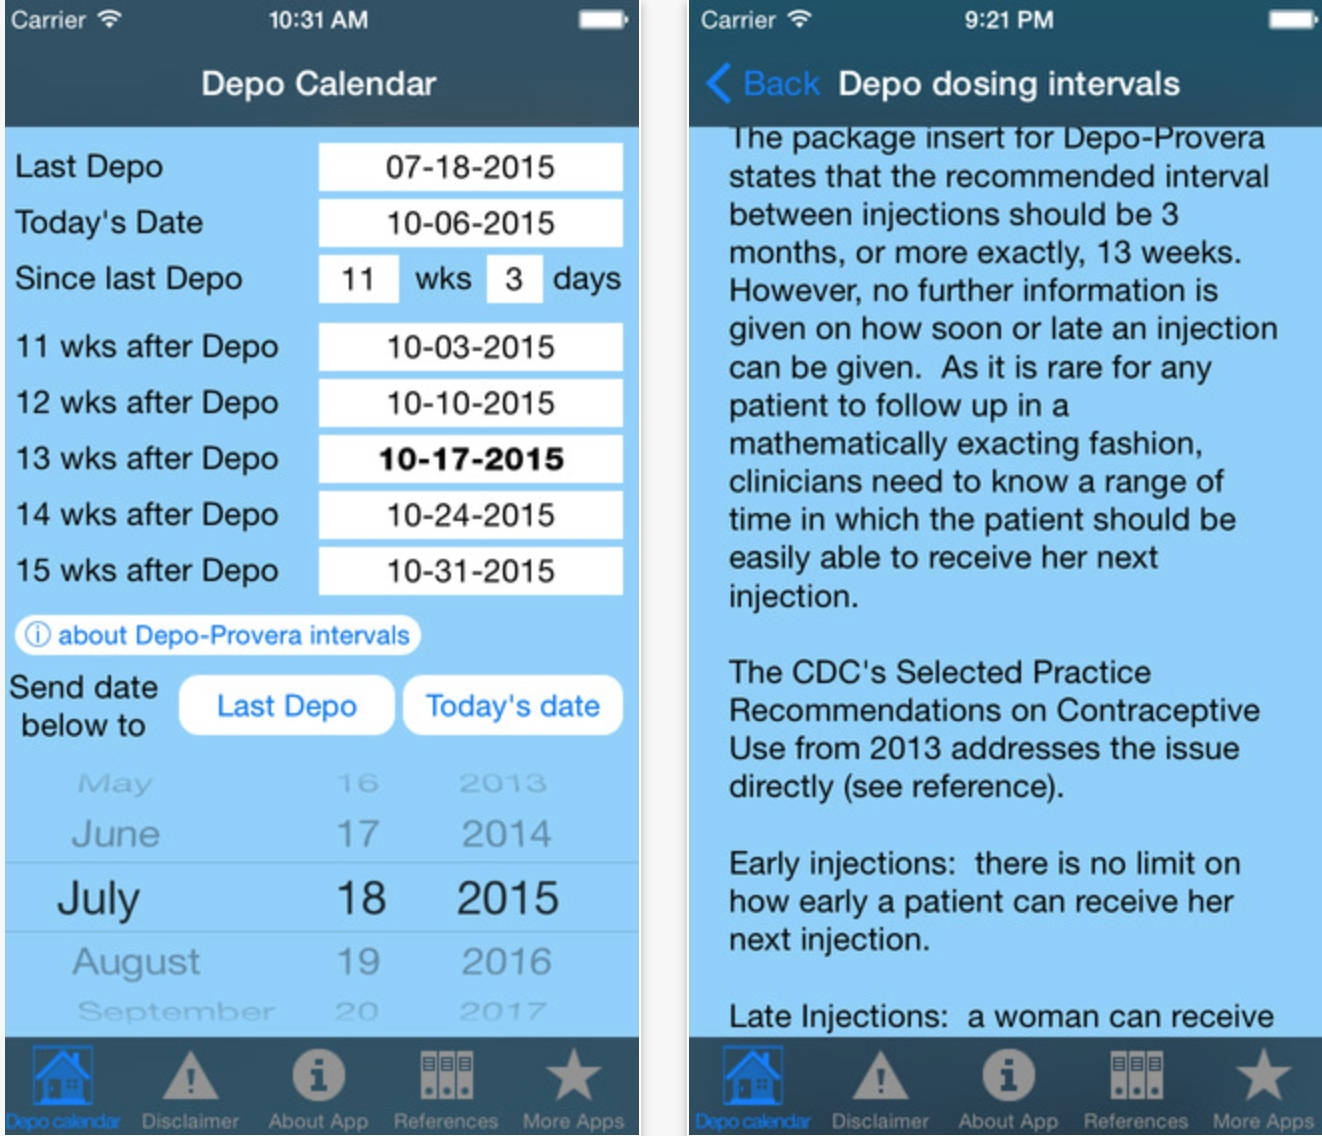 Depo Calendar App Could Significantly Improve Contraception  When Is My Next Depo Prover Injection Schedule